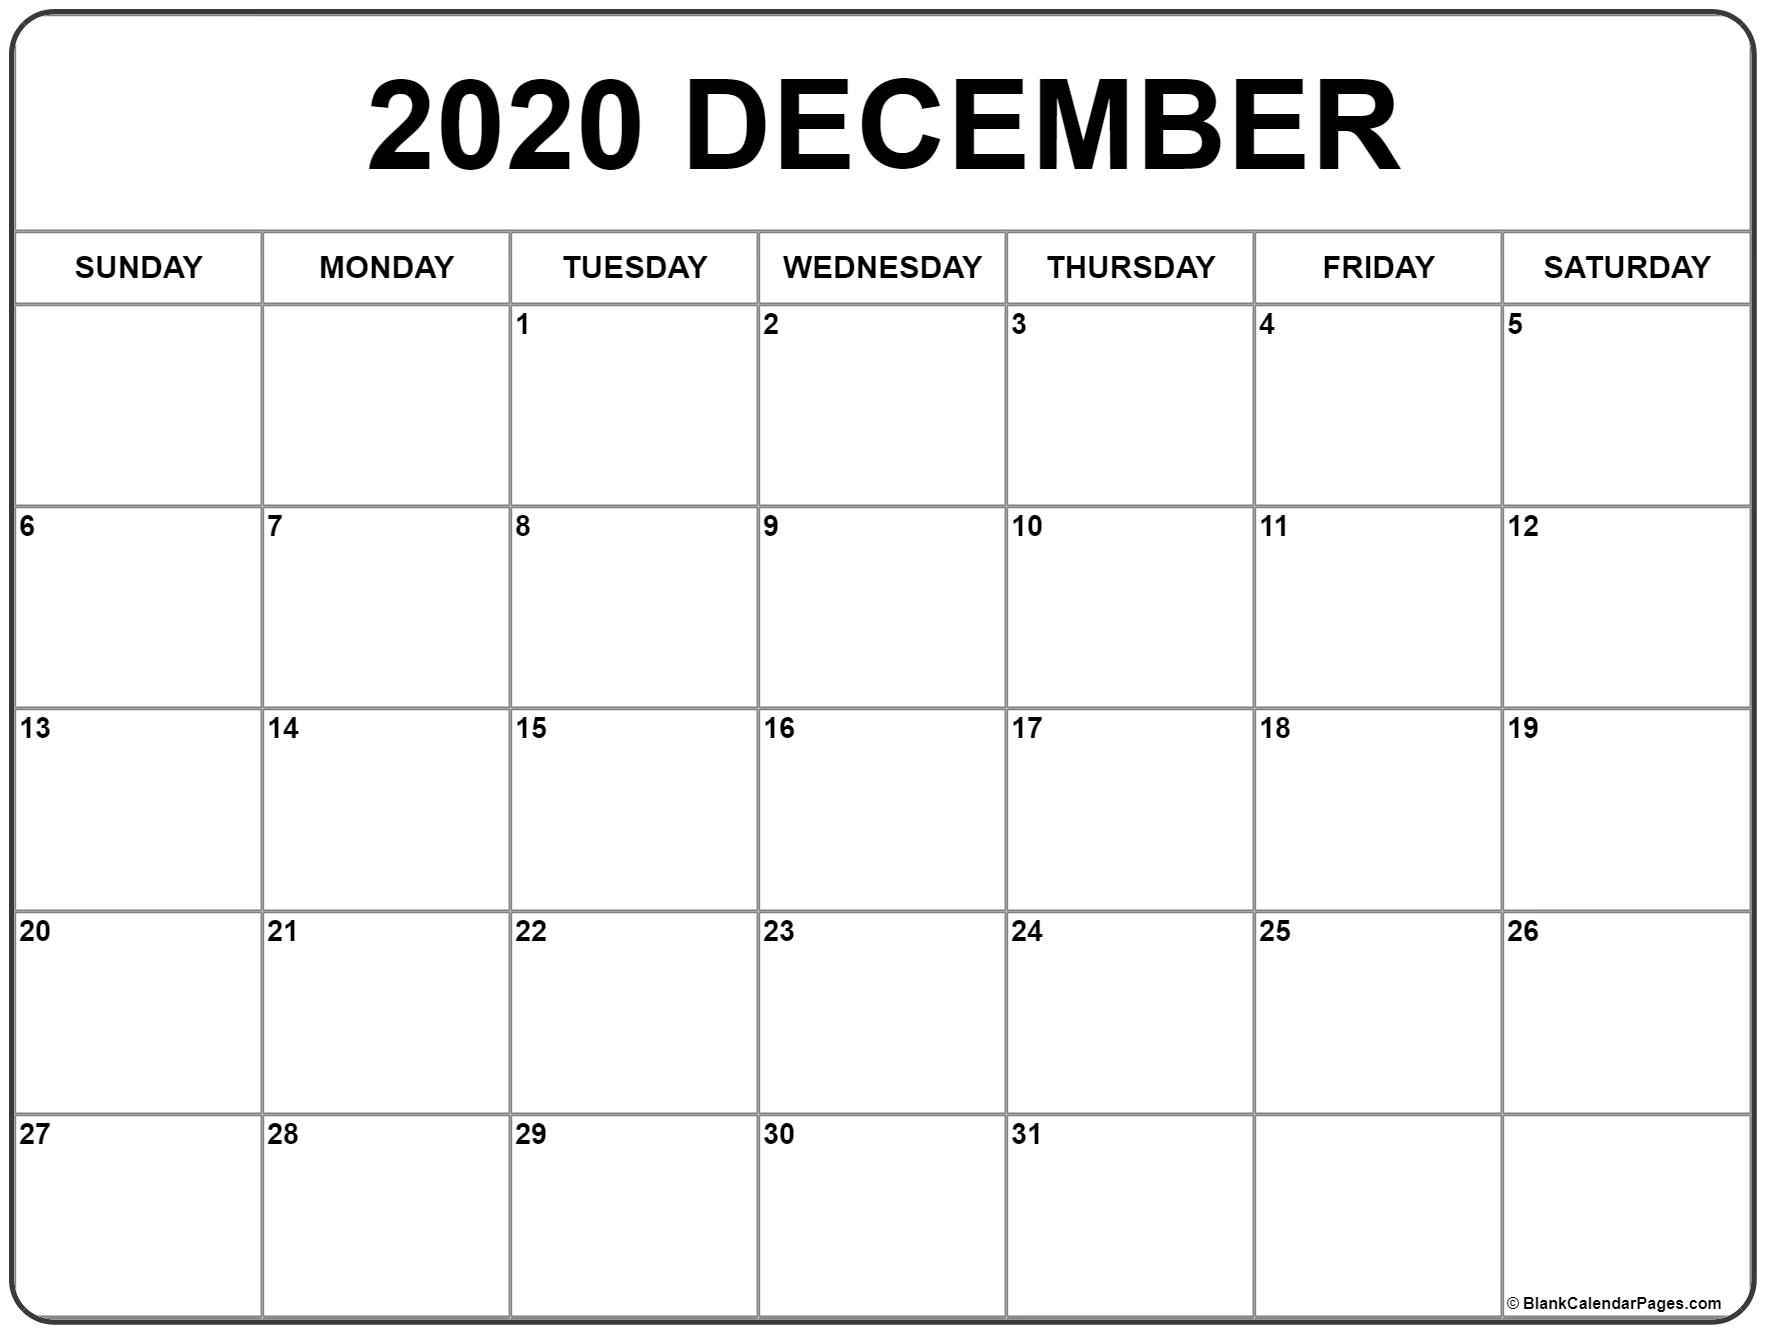 December 2020 Calendar | Free Printable Monthly Calendars  Bill Pay Calendar 2020